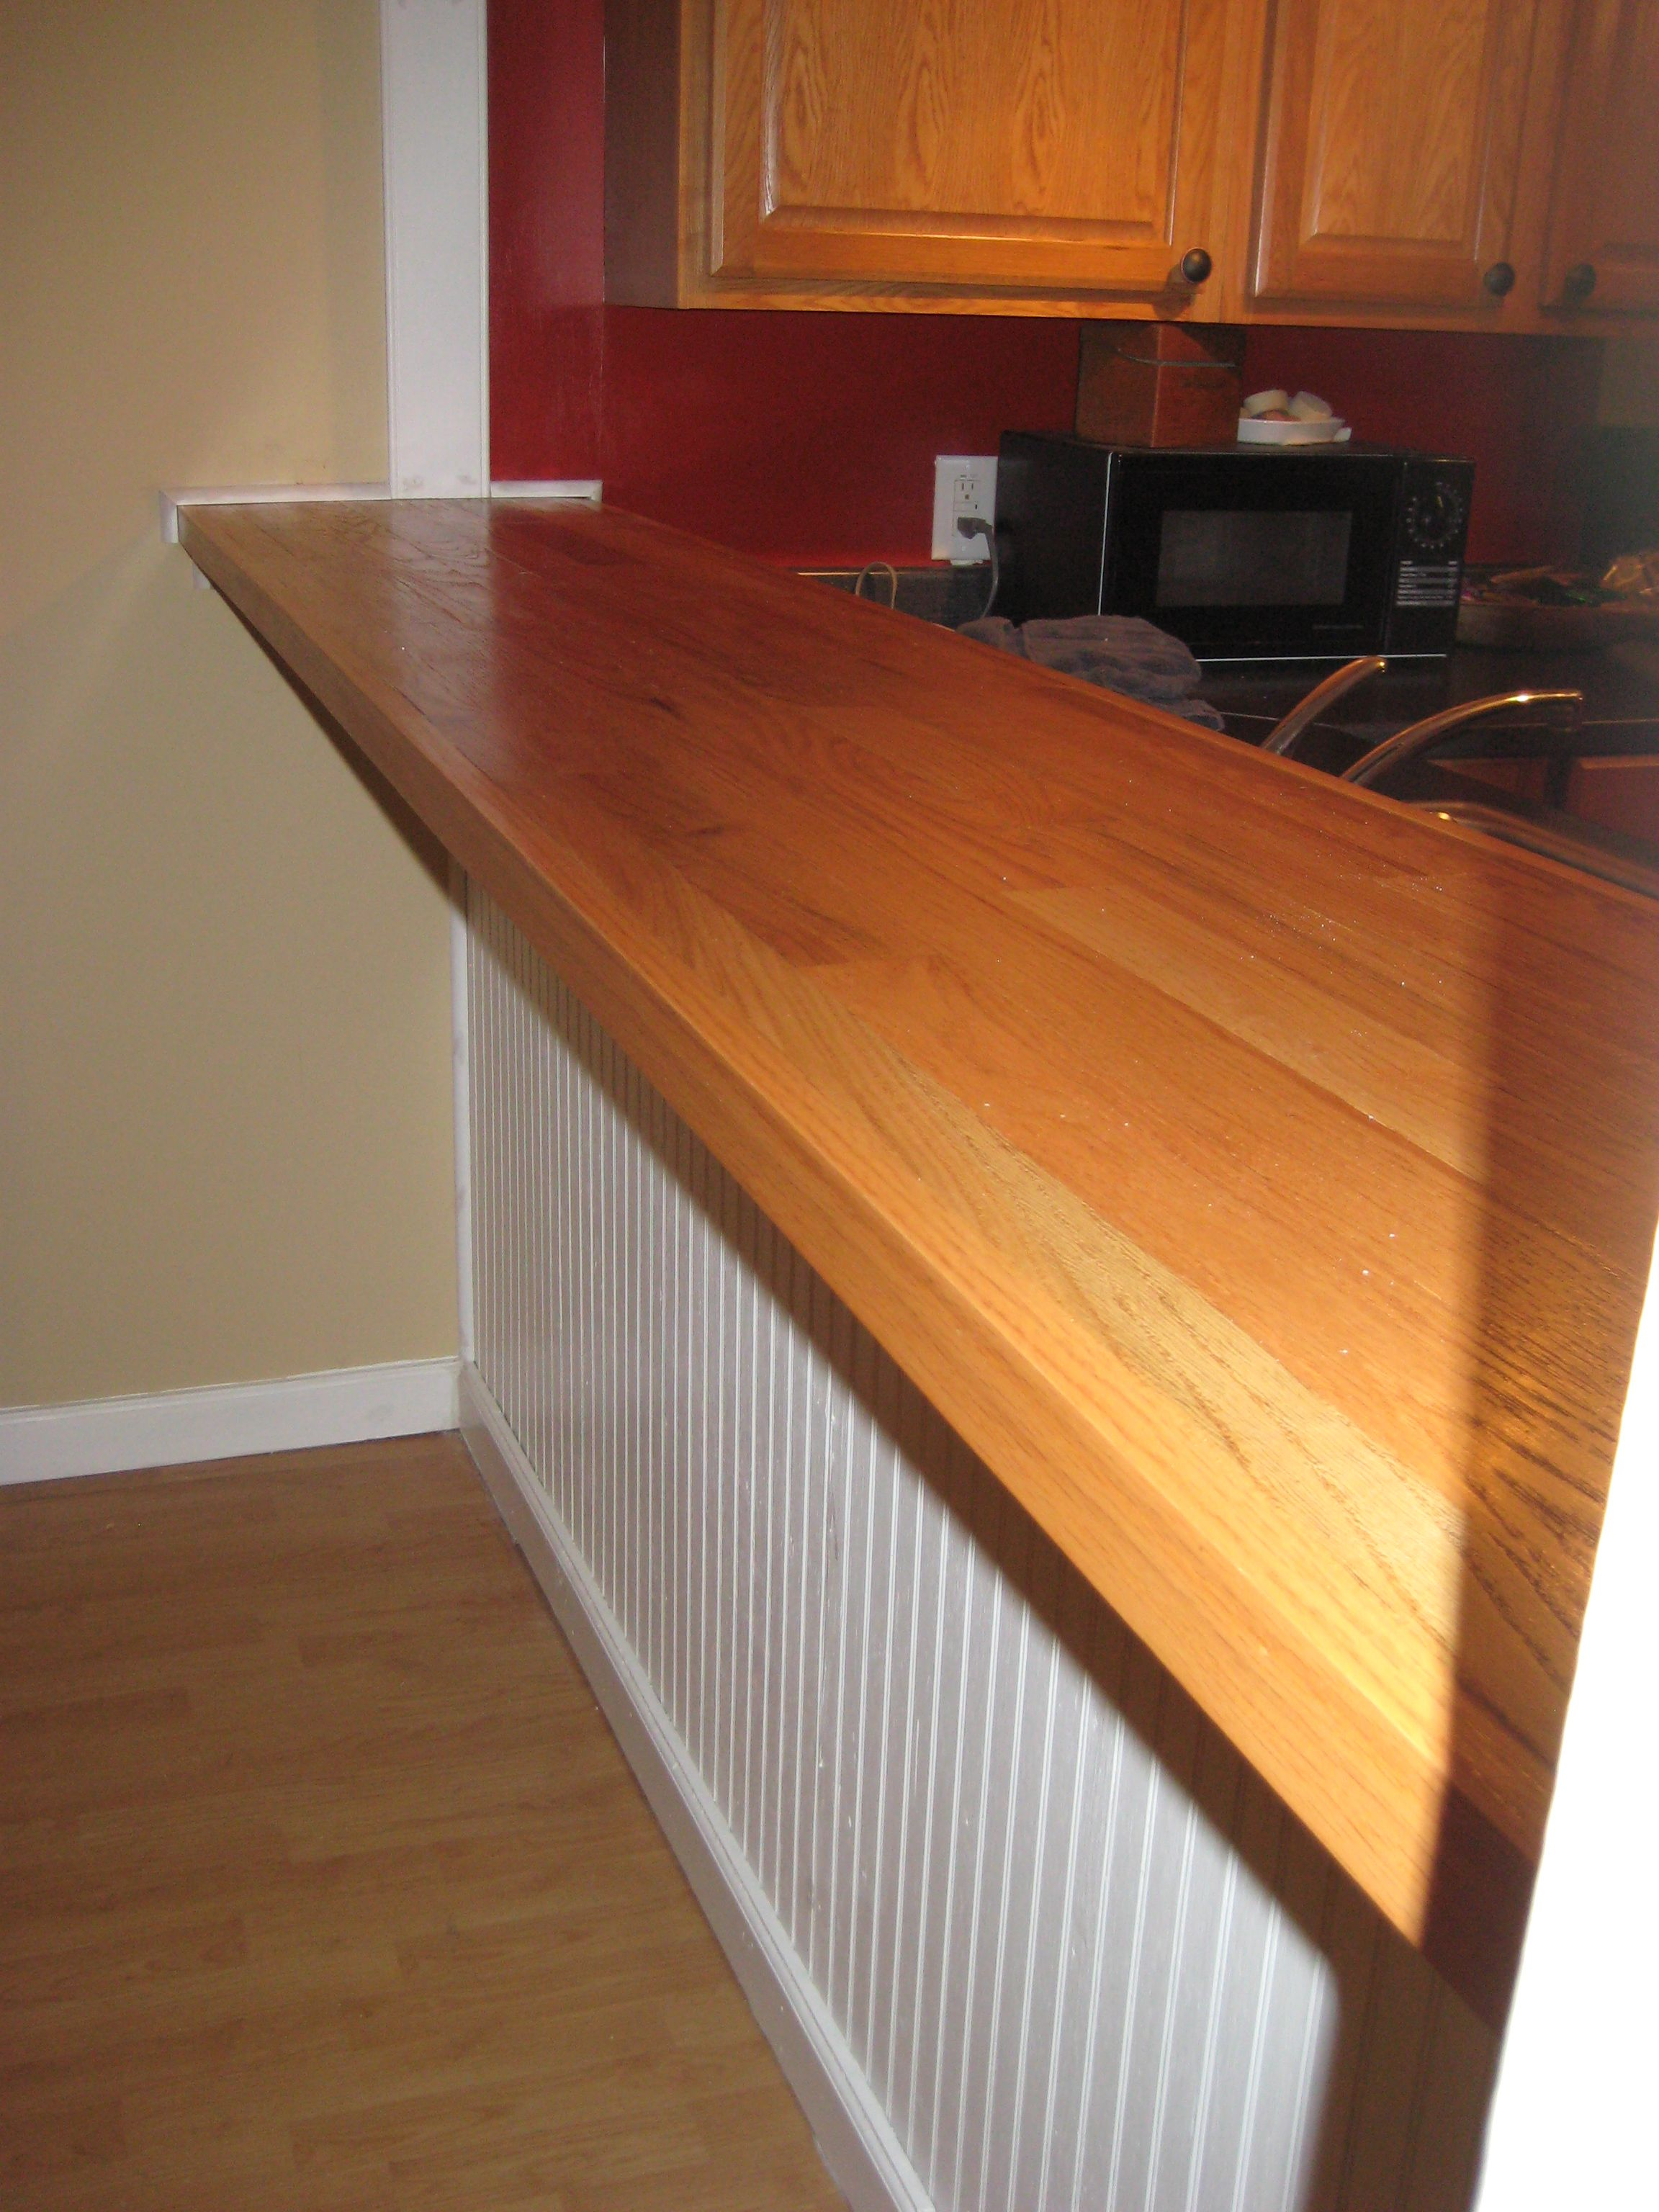 Bar Top Ideas Basement Custom Diy Bar Top Made With Plywood Oak Hardwood Flooring Nail Gun Design Ideas